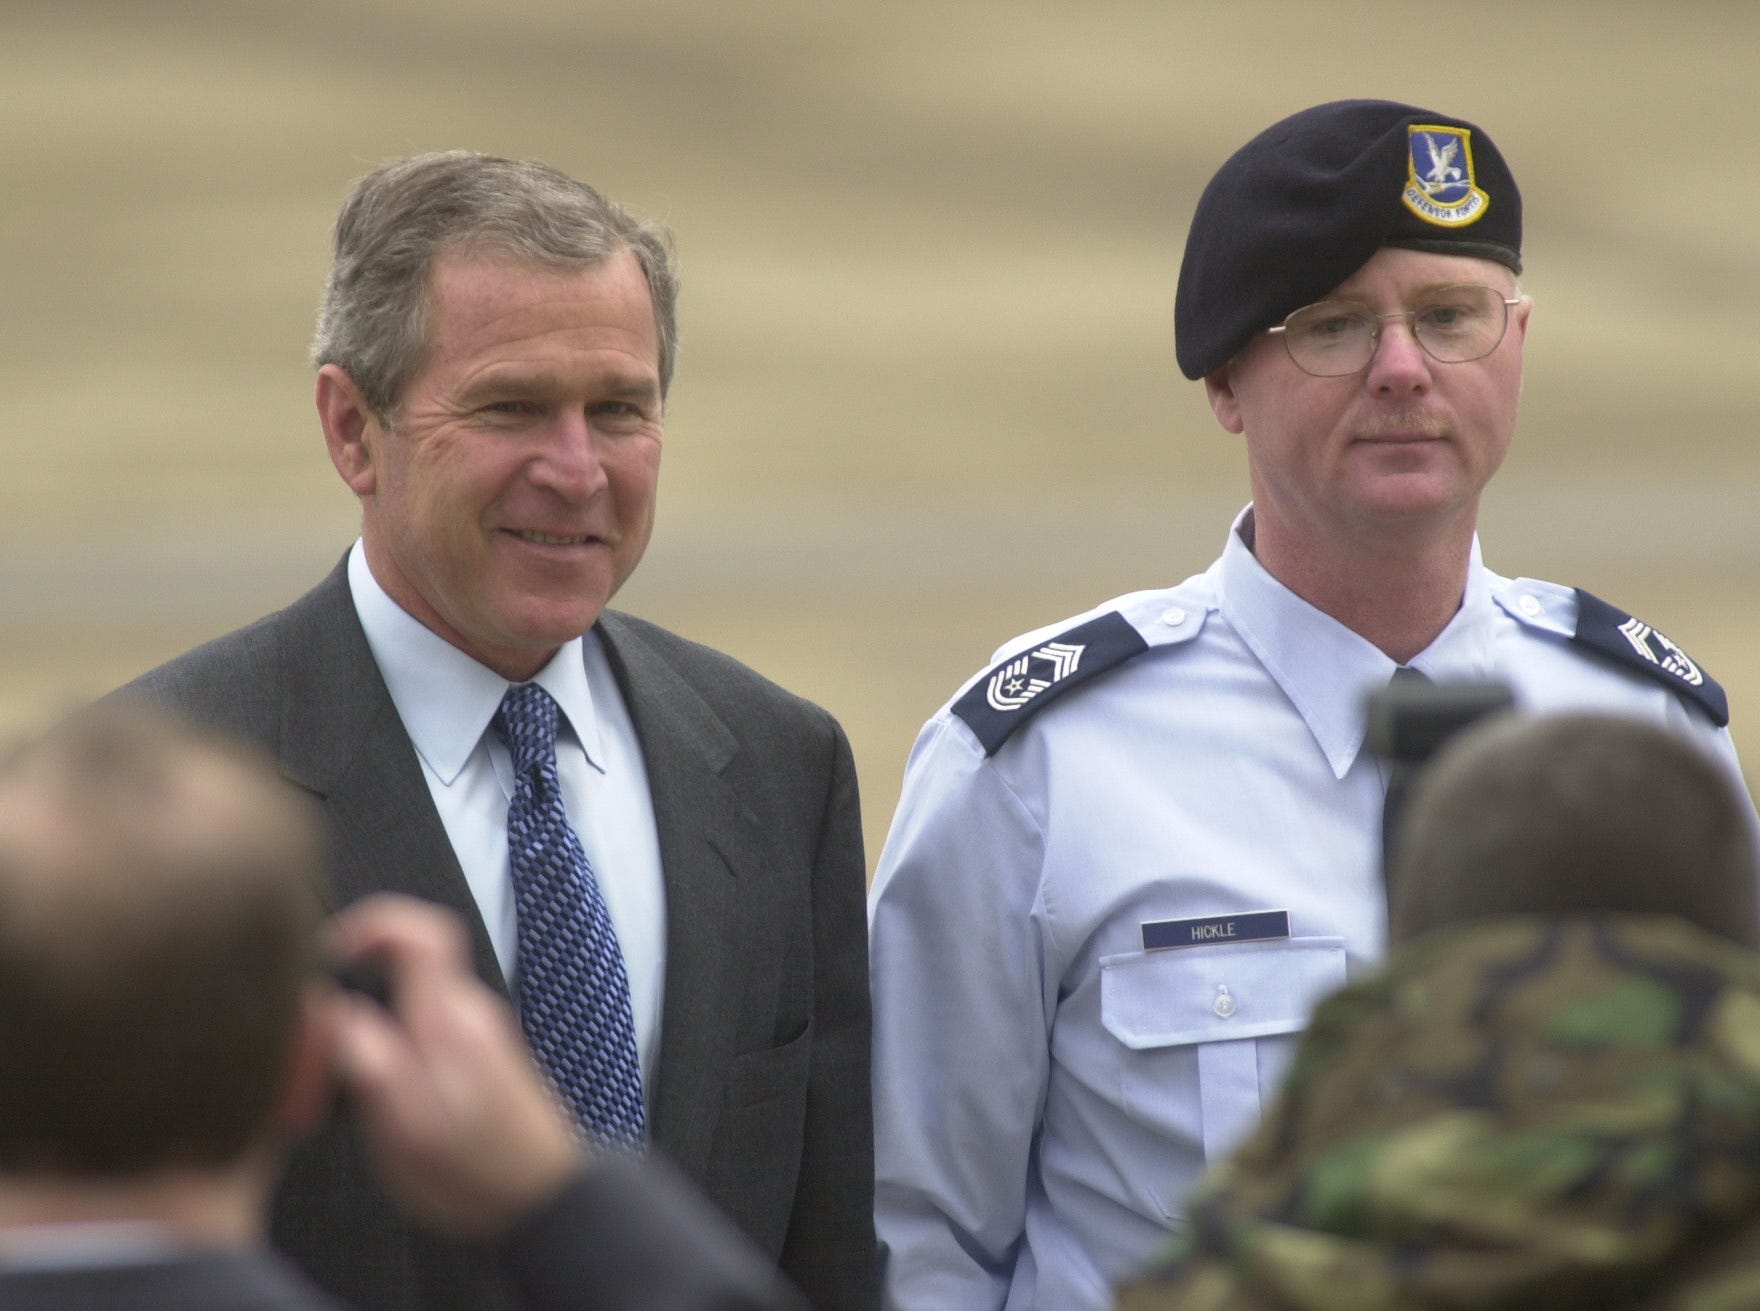 President George W. Bush stands with  Chief Master Sgt. Terry Hickle after promoting him Wednesday at McGhee Tyson Airbase. Hickle, the chief of security for the 134th Air Refueling Squadron, was promoted from senior master sargeant in a brief ceremony before Bush departed the airbase. 2001.